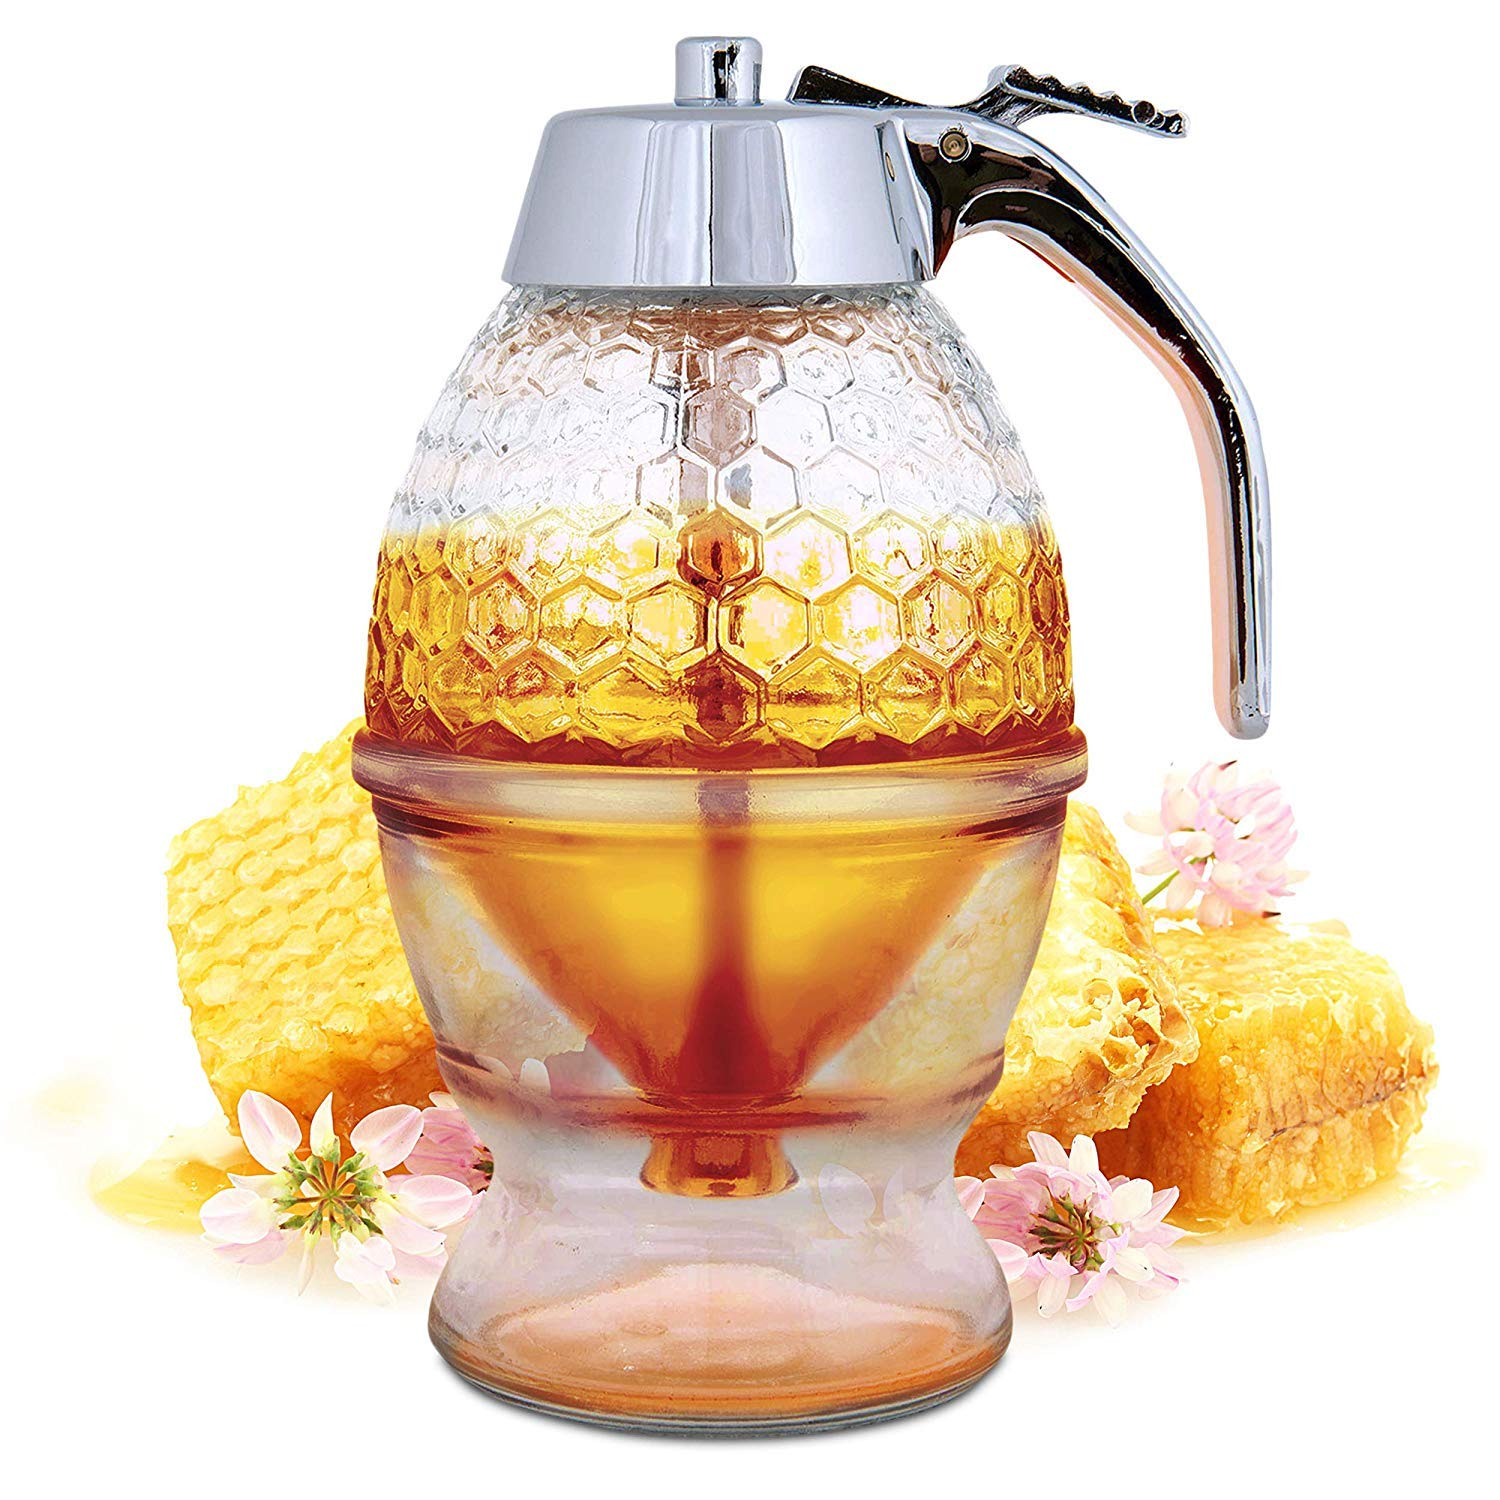 Hunnibi Glass Honey Dispenser, Syrup and Sugar Jar Pot, Replace Dipper Container by Hunnibi